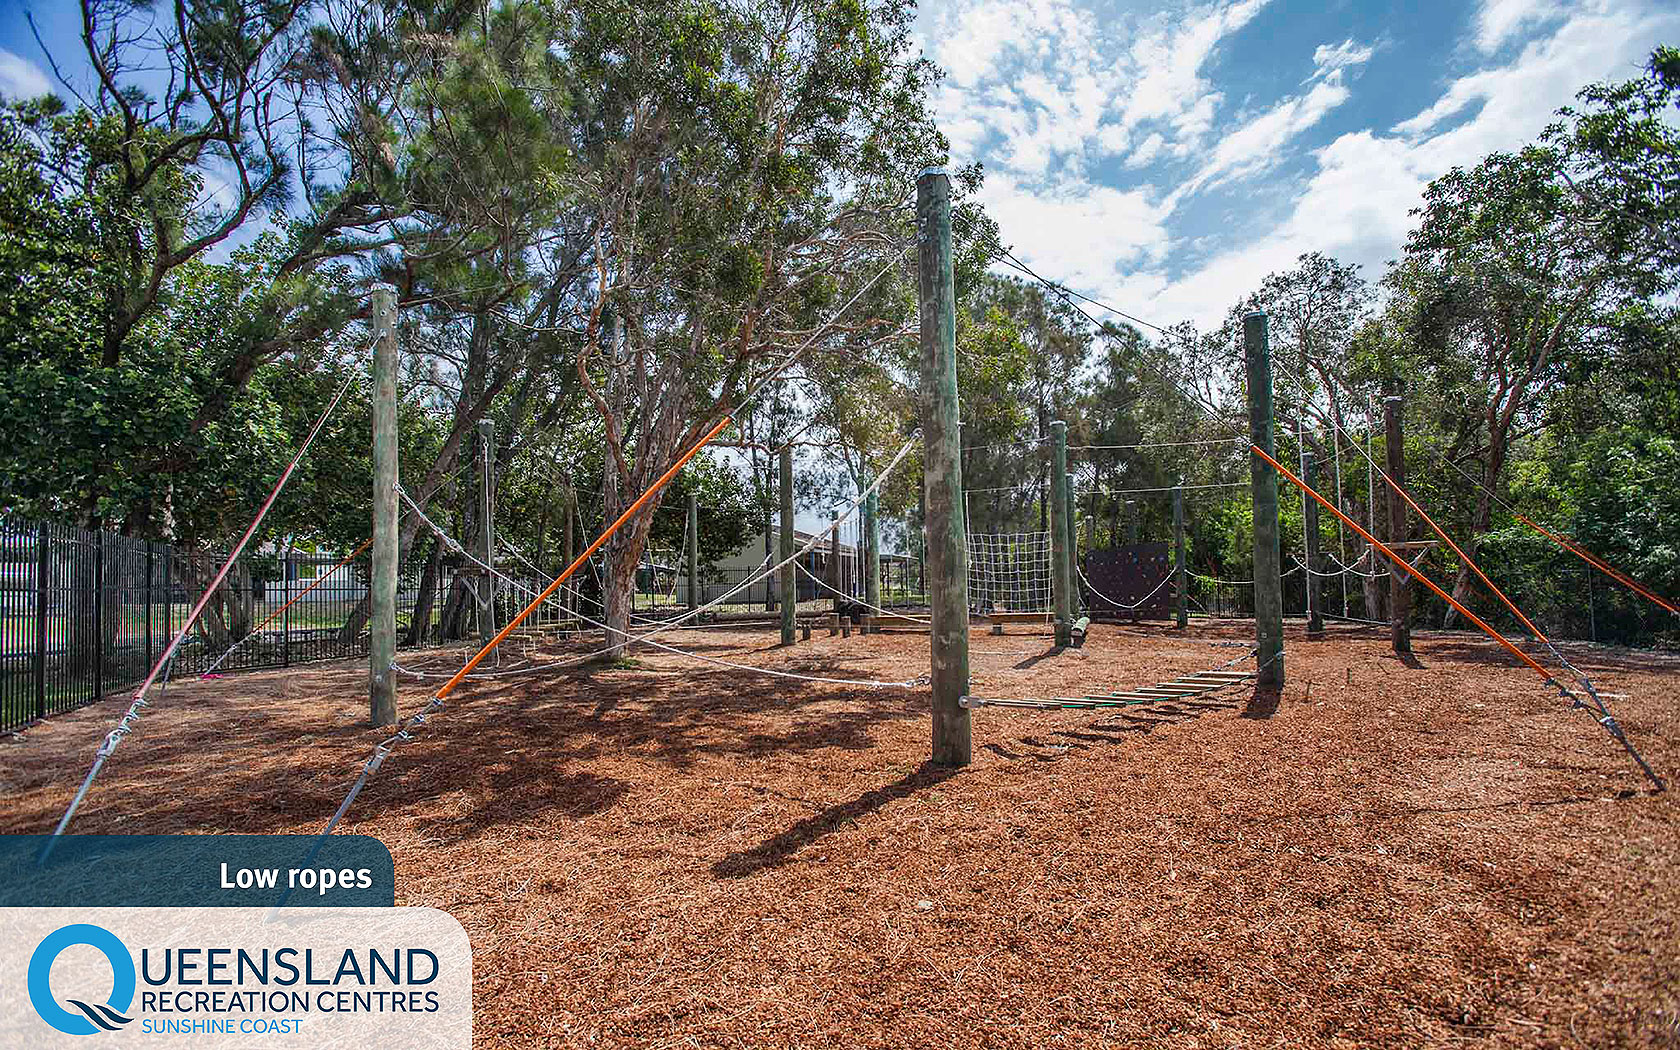 Low hanging ropes, logs and climbing obstacles in bushland at the Sunshine Coast Recreation Centre